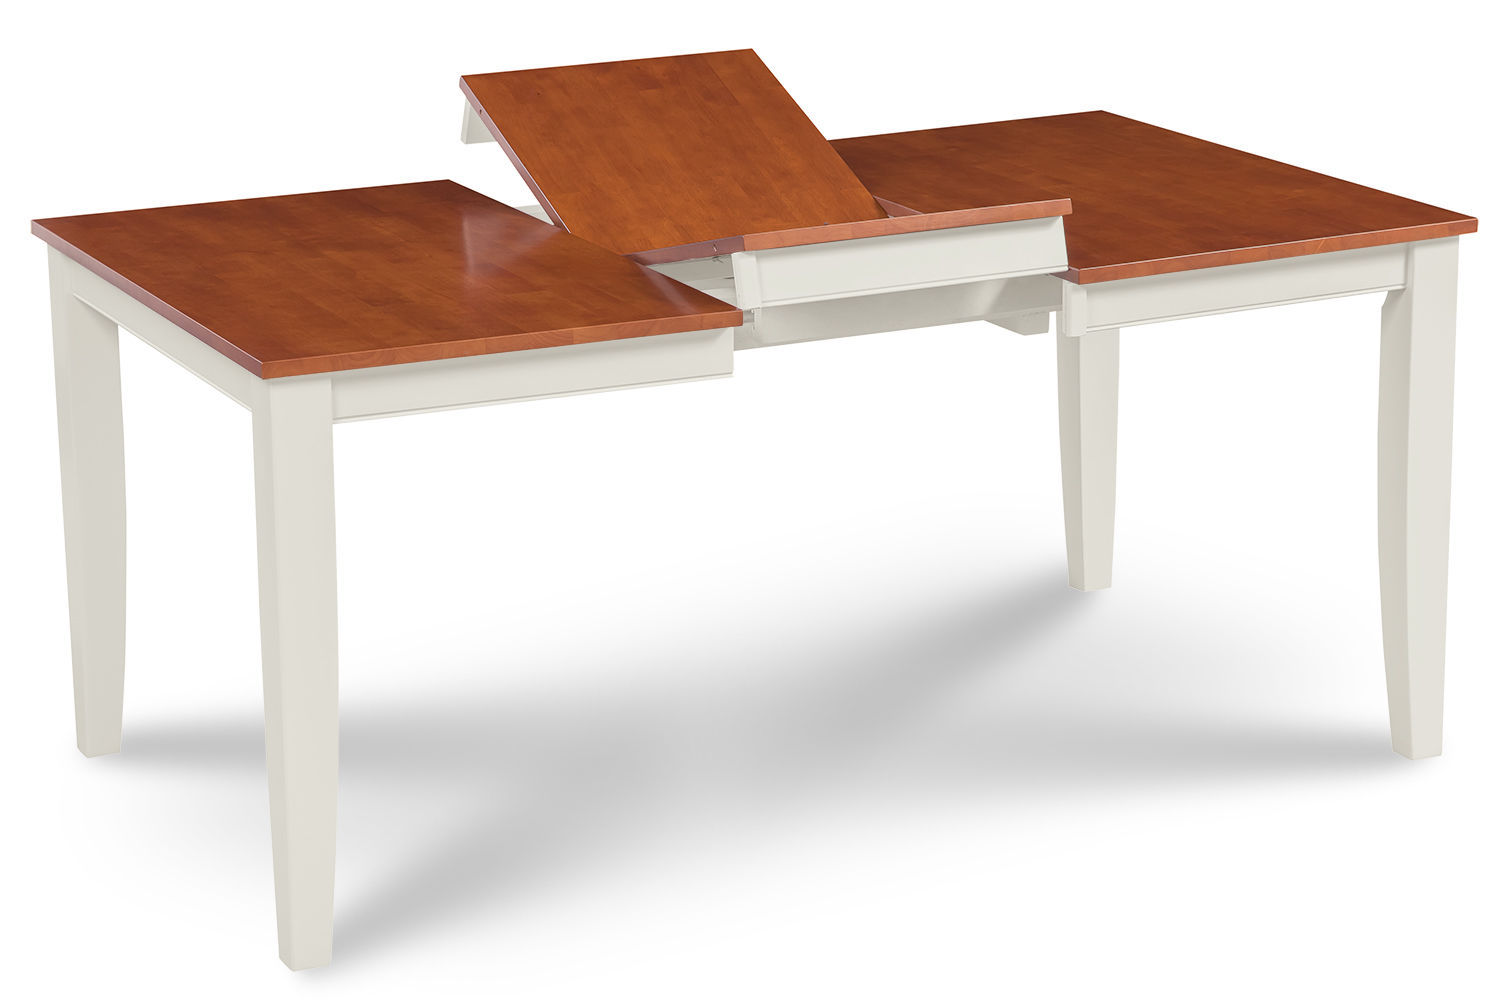 RECTANGULAR DINING ROOM TABLE SET WITH WOOD SEAT CHAIRS IN WHITE & CHERRY